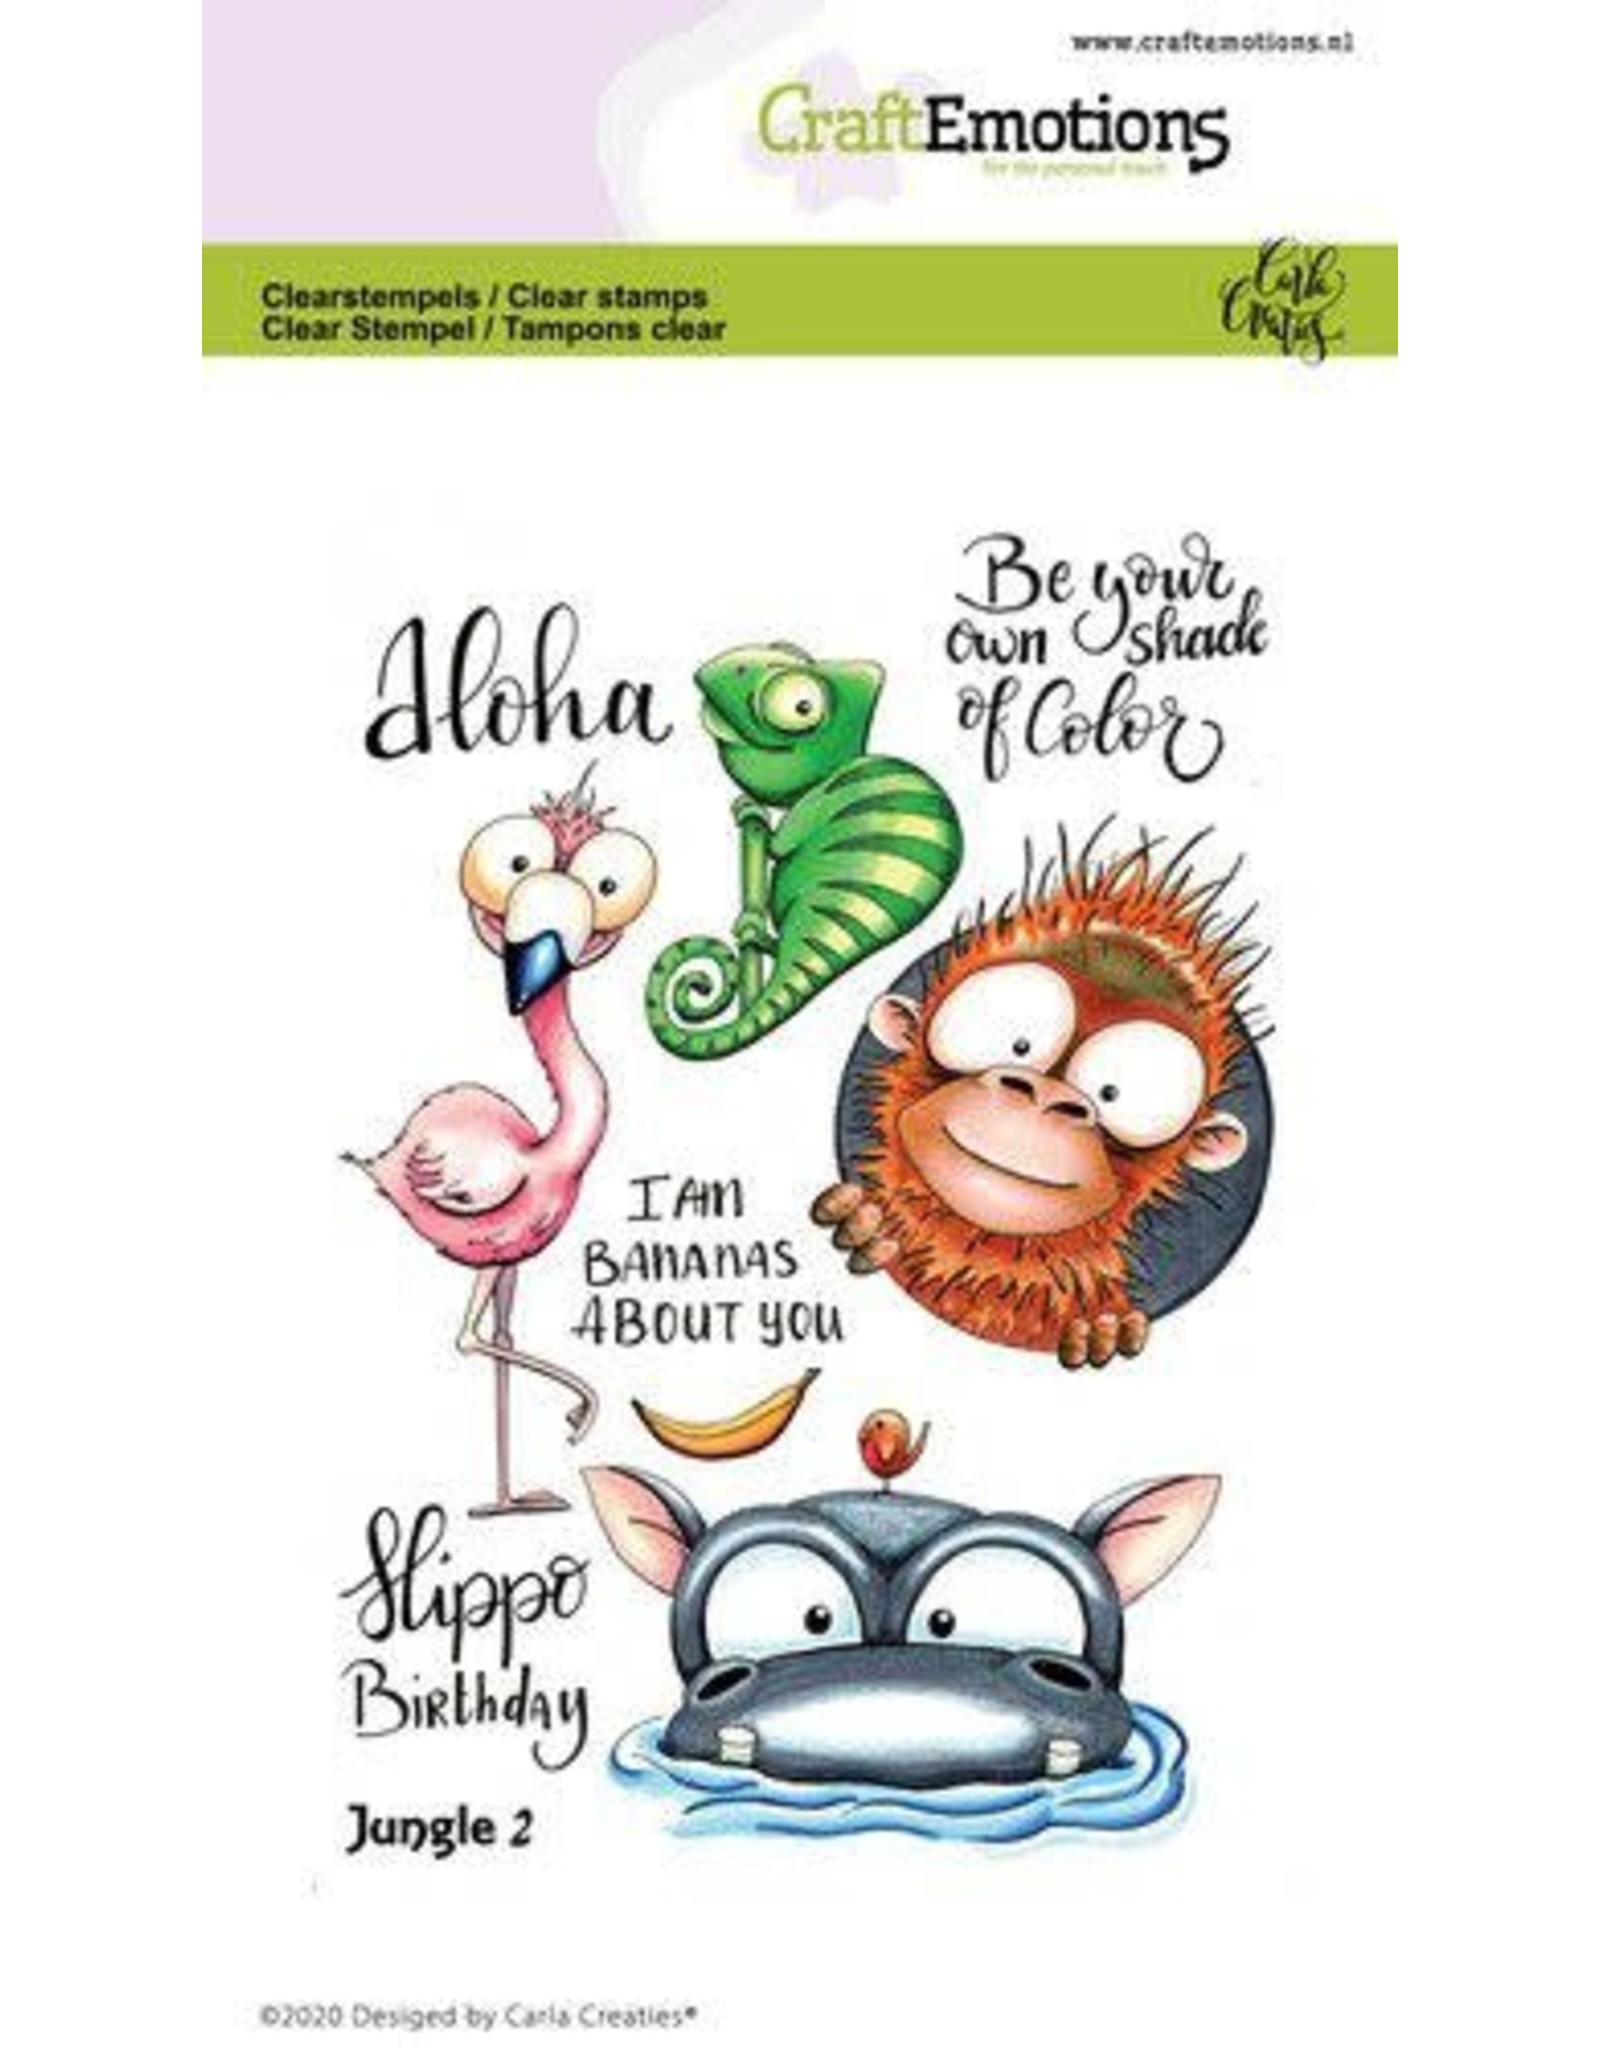 Craft Emotions CraftEmotions clearstamps A6 - Jungle 2 Carla Creaties